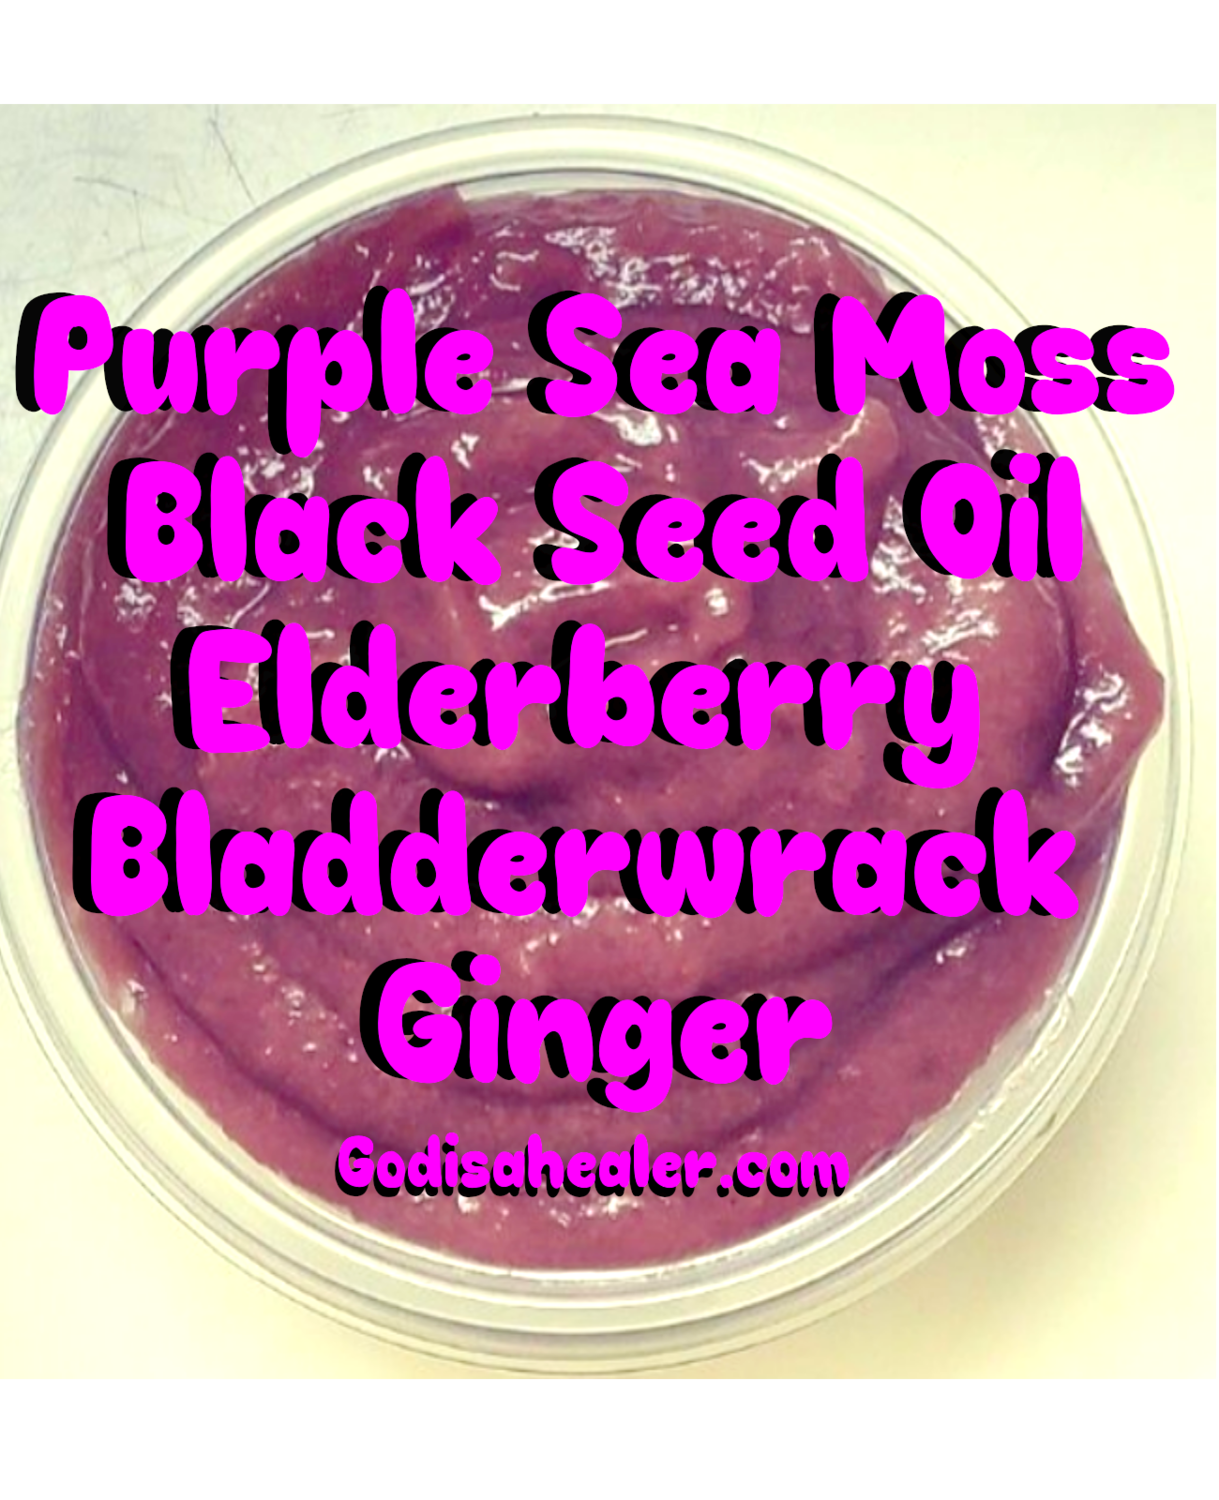 Super Immunity Purple Seamoss Mason Jar Or Two 8 ounce containers for shipping.